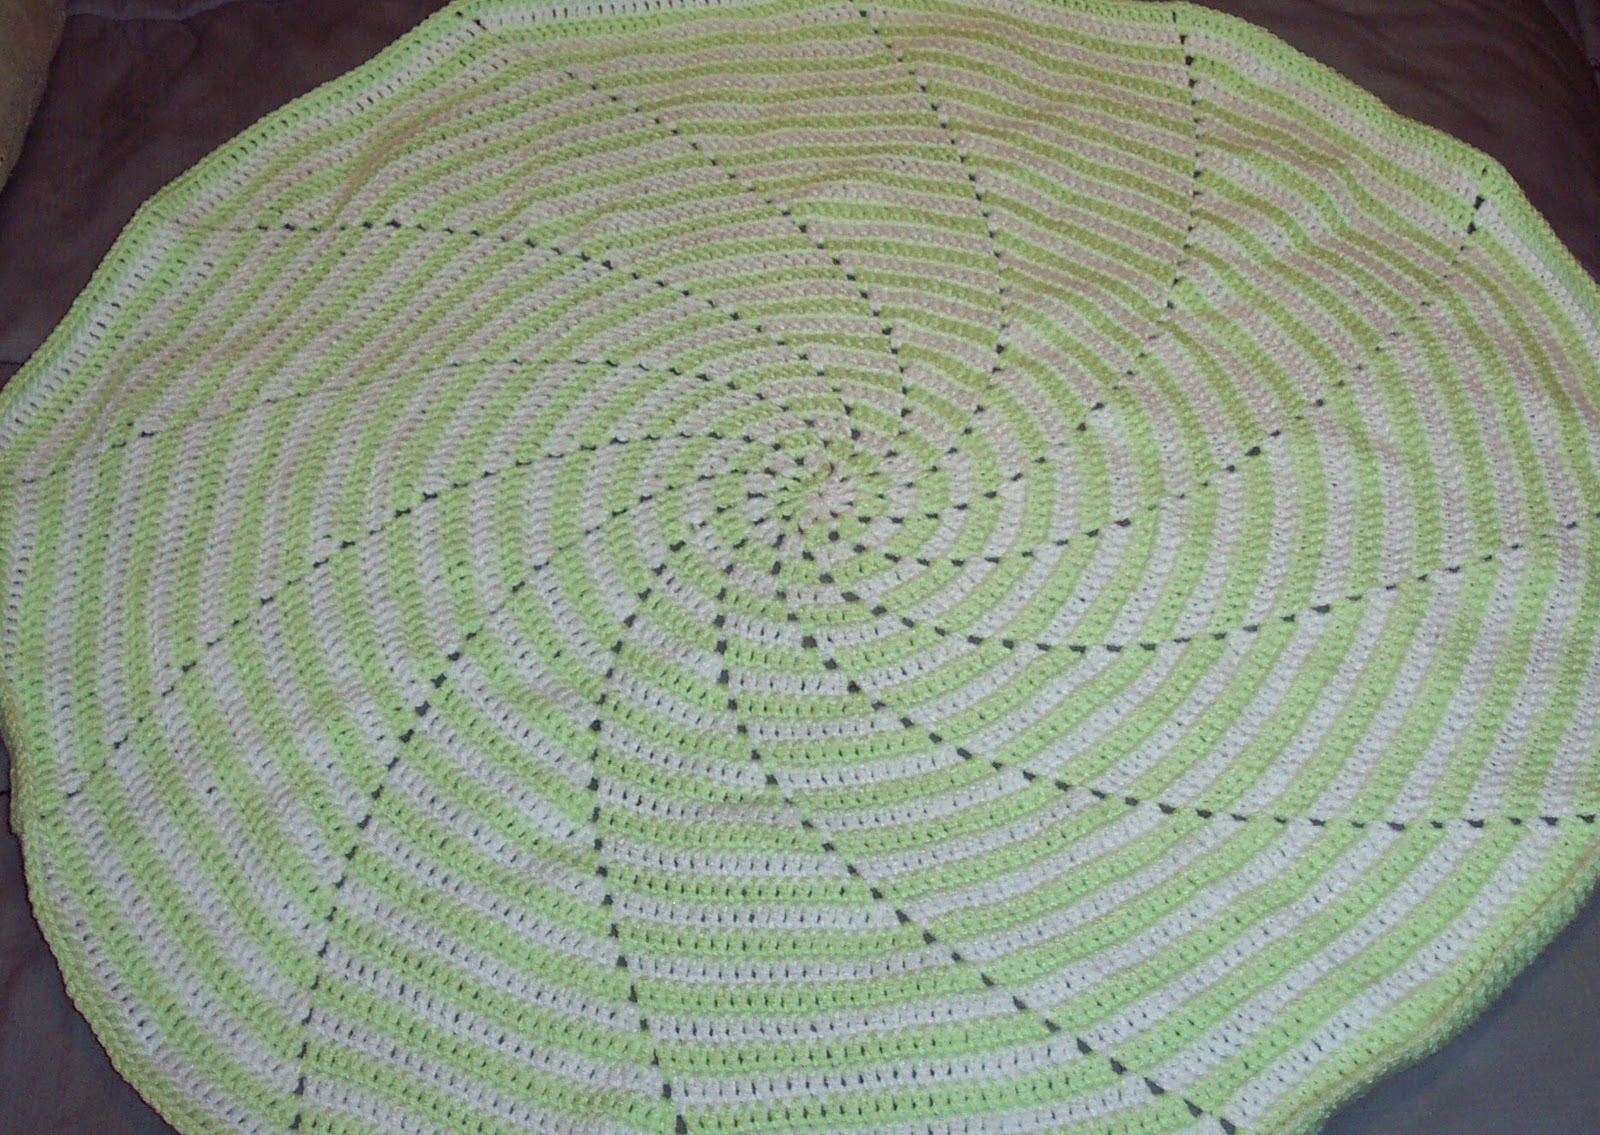 SmoothFox Crochet and Knit: SmoothFox\'s Spiral Baby Blanket Number 2